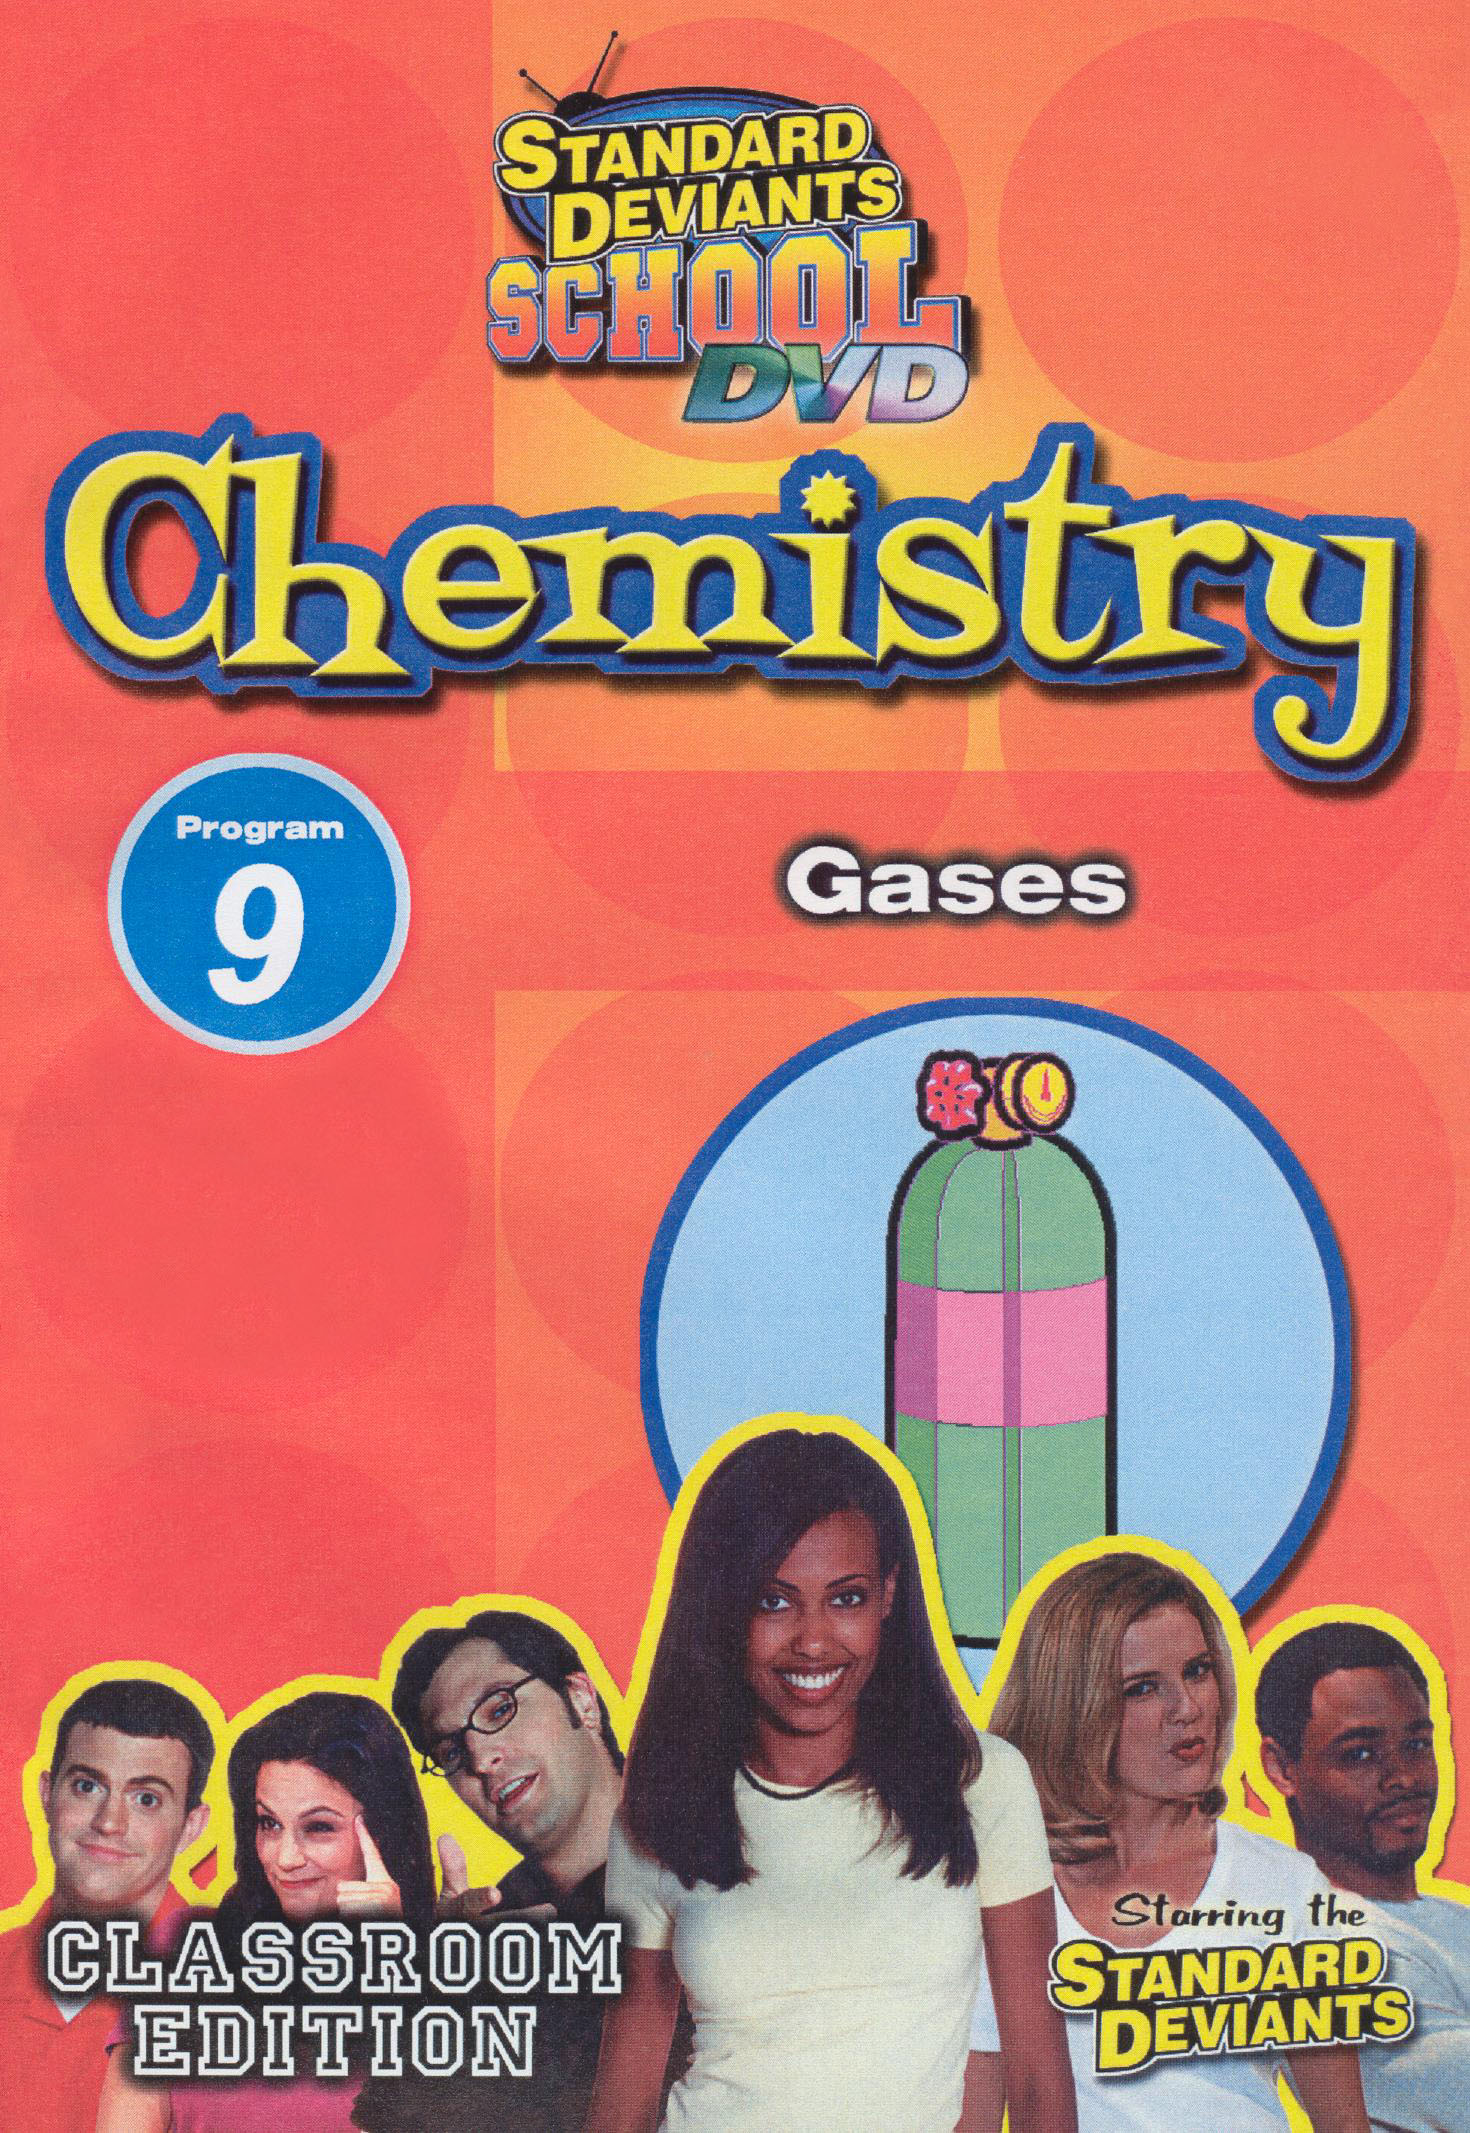 Standard Deviants School: Chemistry, Program 9